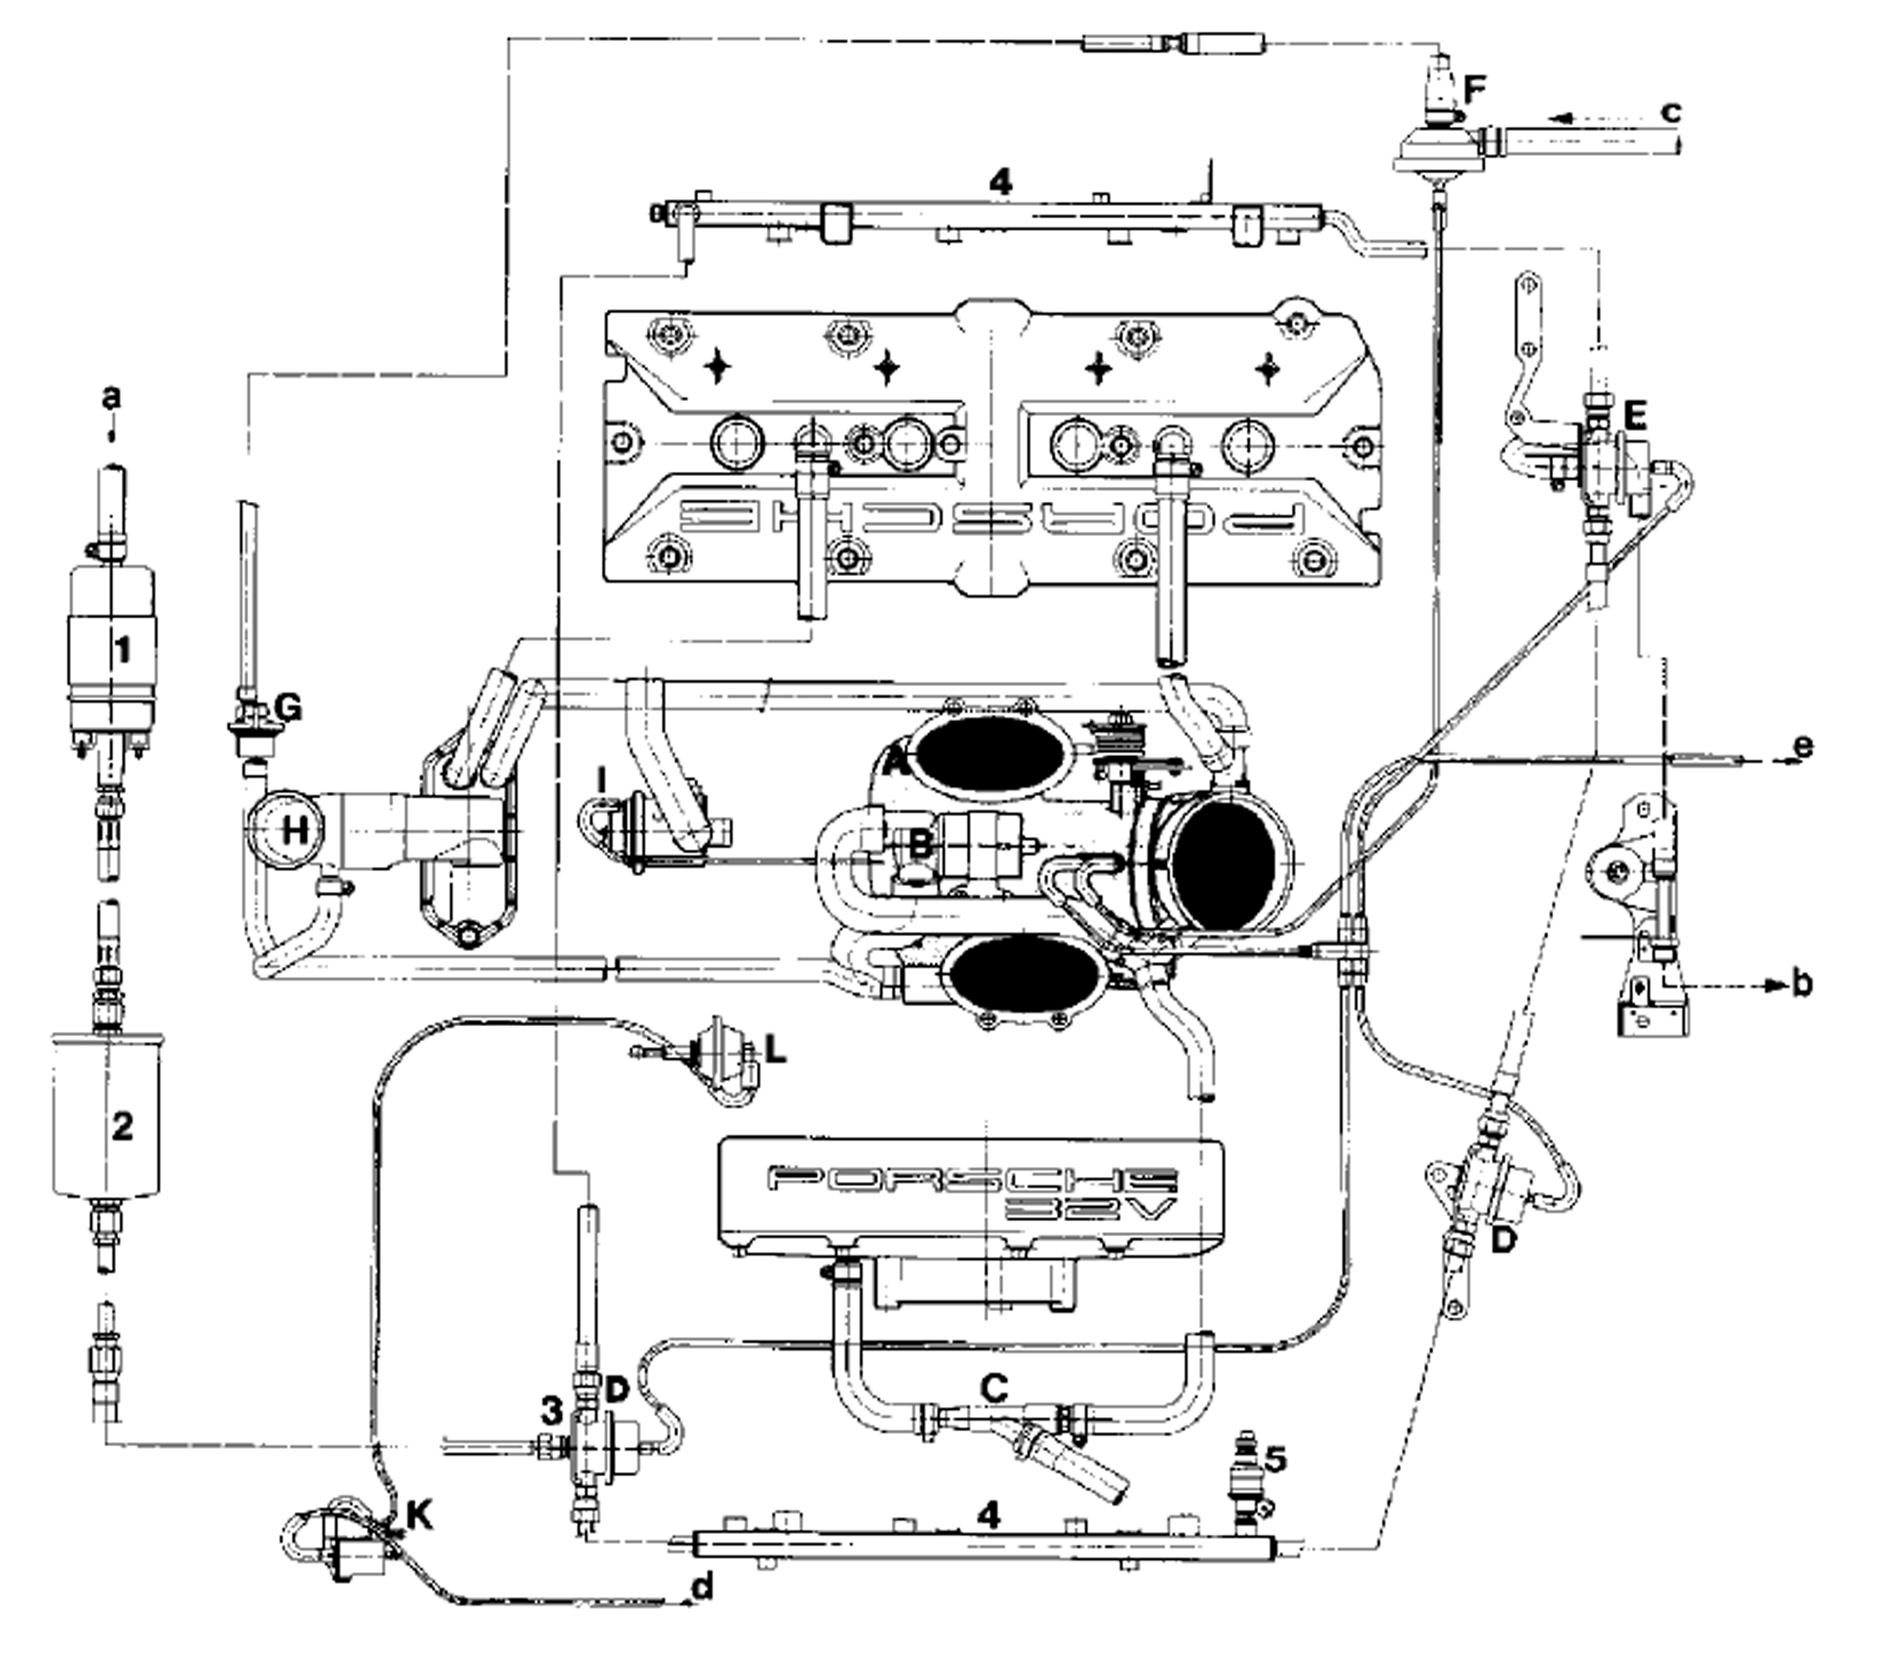 [WRG-7159] Porsche Transmission Diagrams